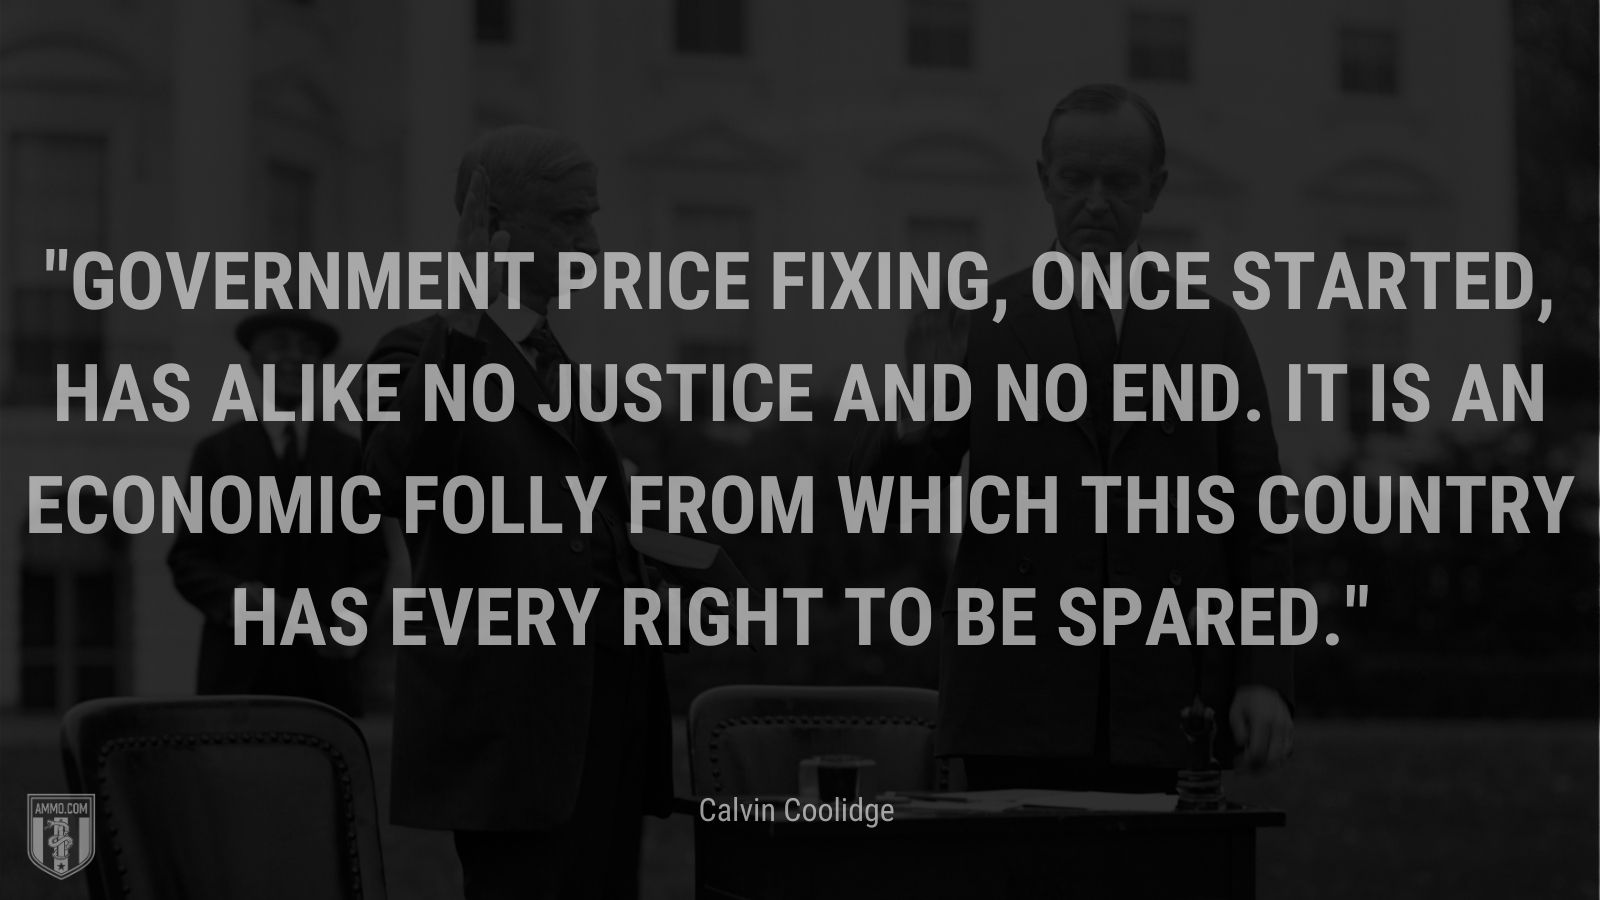 """""""Government price fixing, once started, has alike no justice and no end. It is an economic folly from which this country has every right to be spared."""" - Calvin Coolidge"""